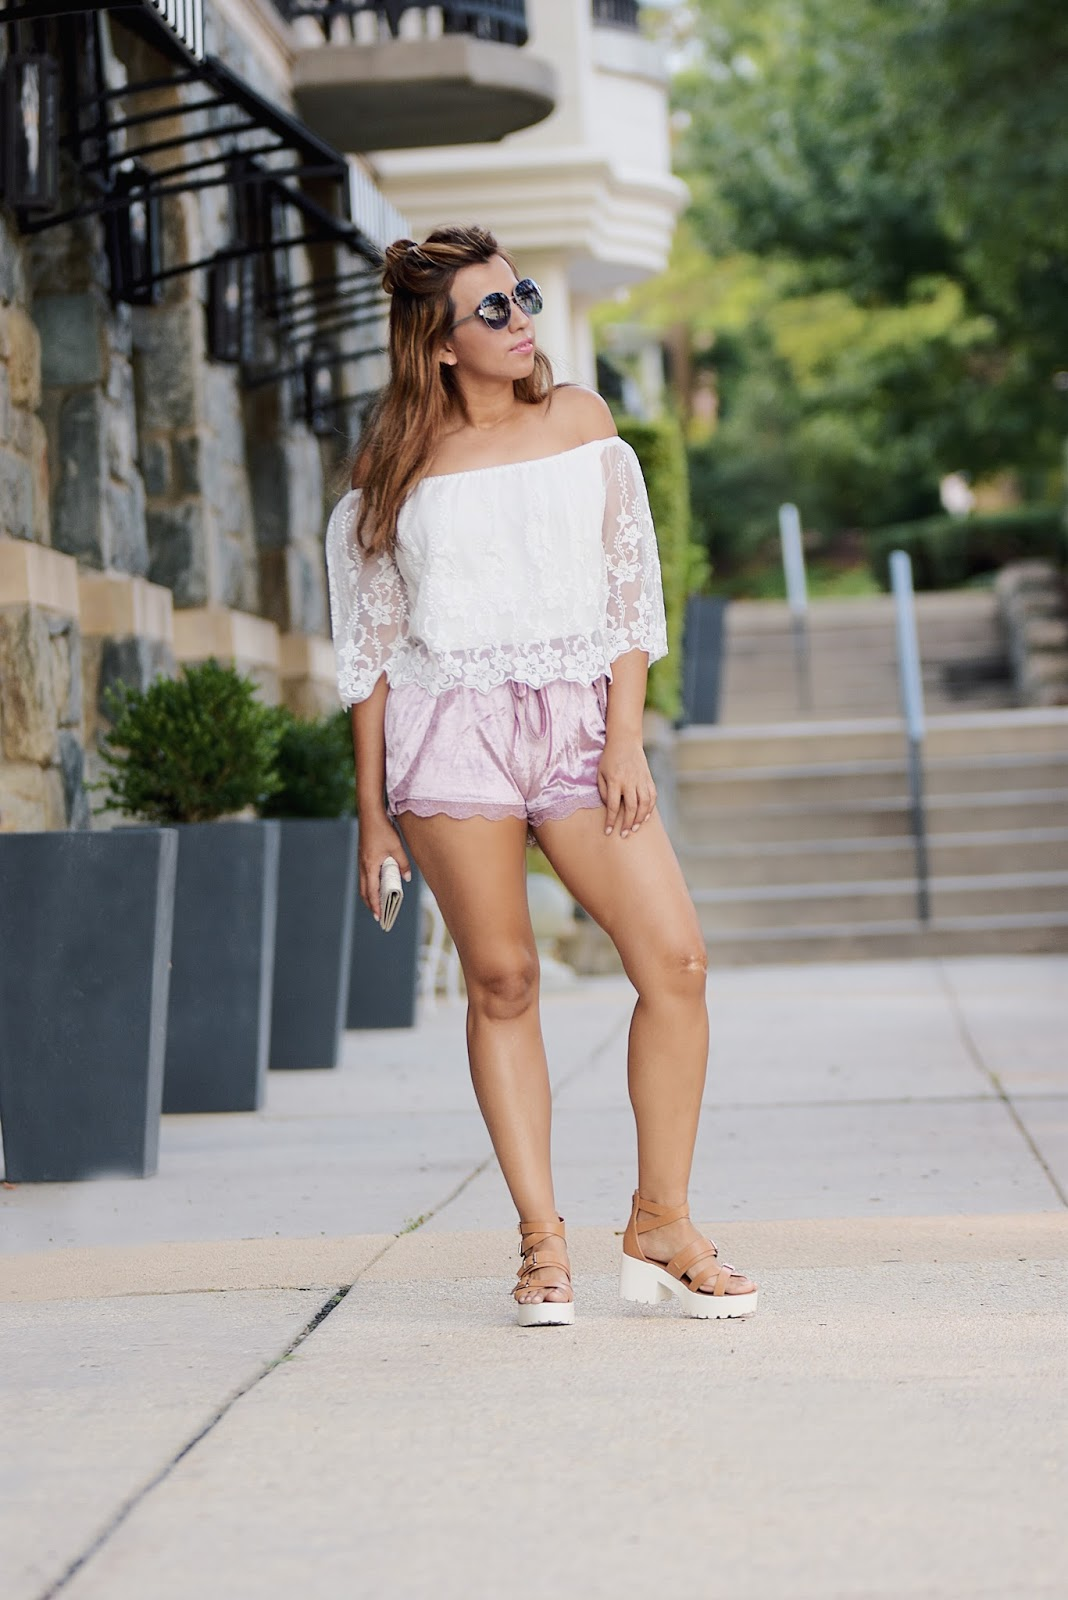 Wearing: Wallet: Stella & Dot Crop Top: TwinkleDeals Shorts: SweatyRocks Sunnies: Steve Madden